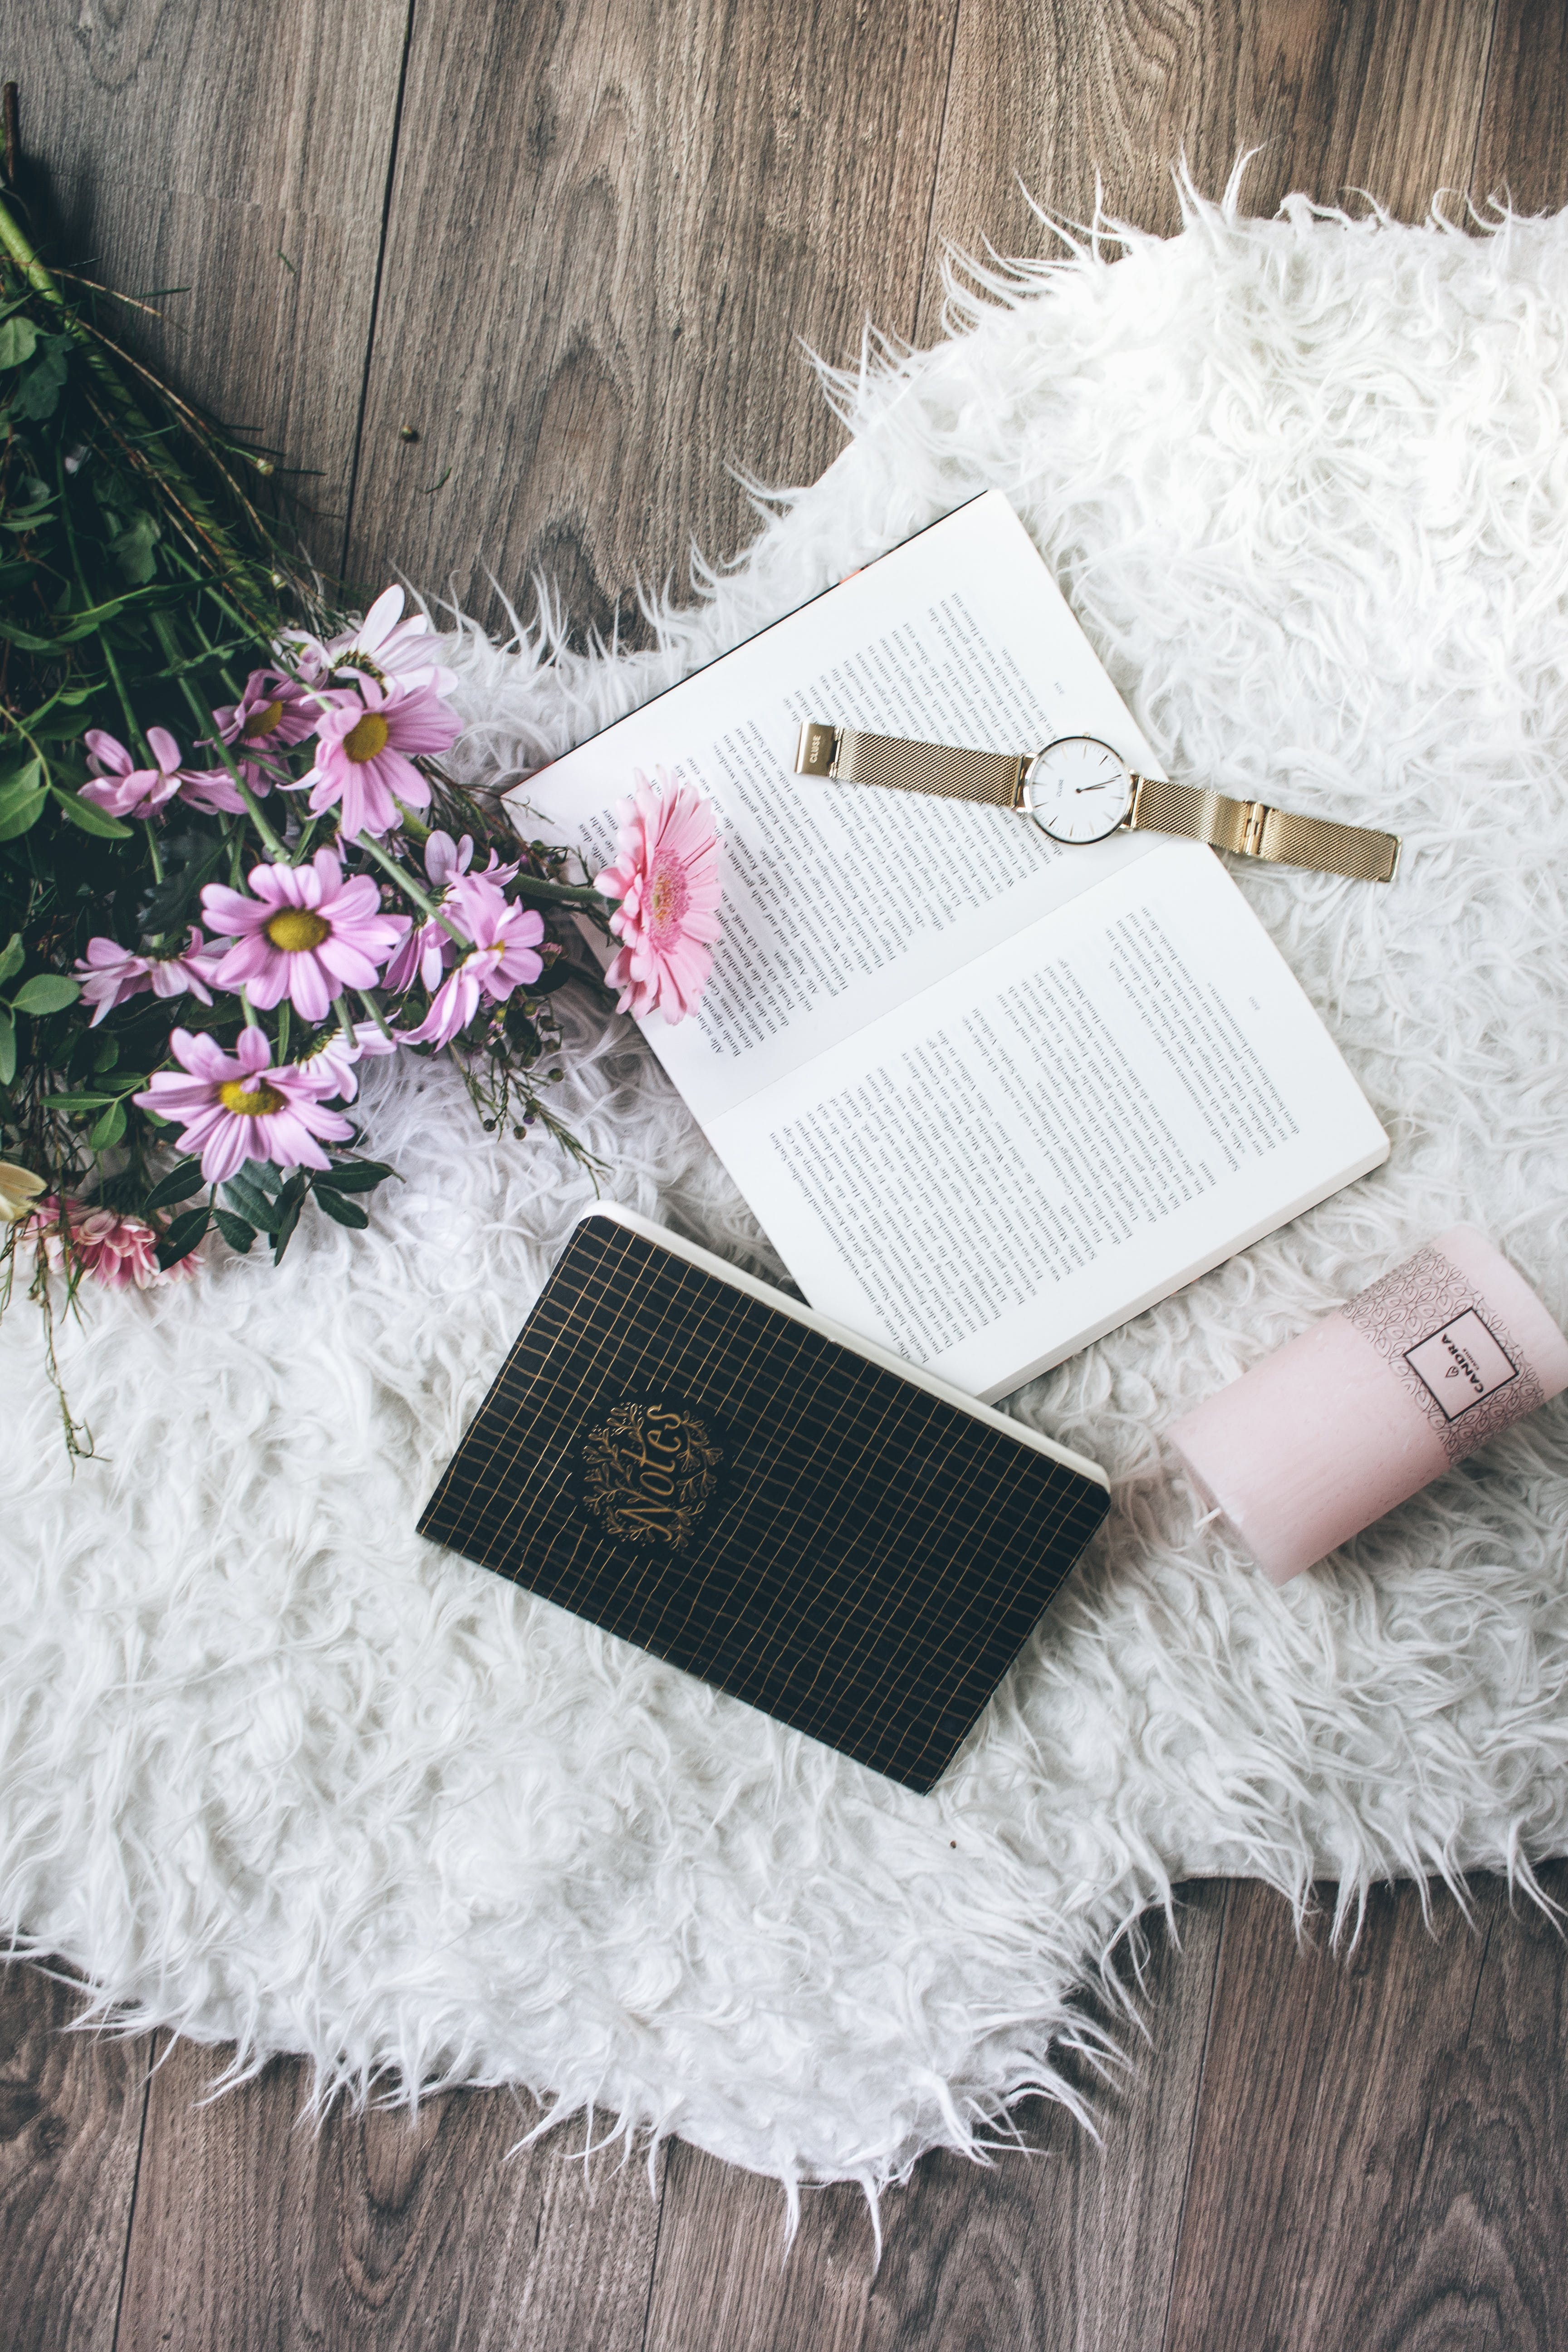 Flatlay Photo of a Watch on Book